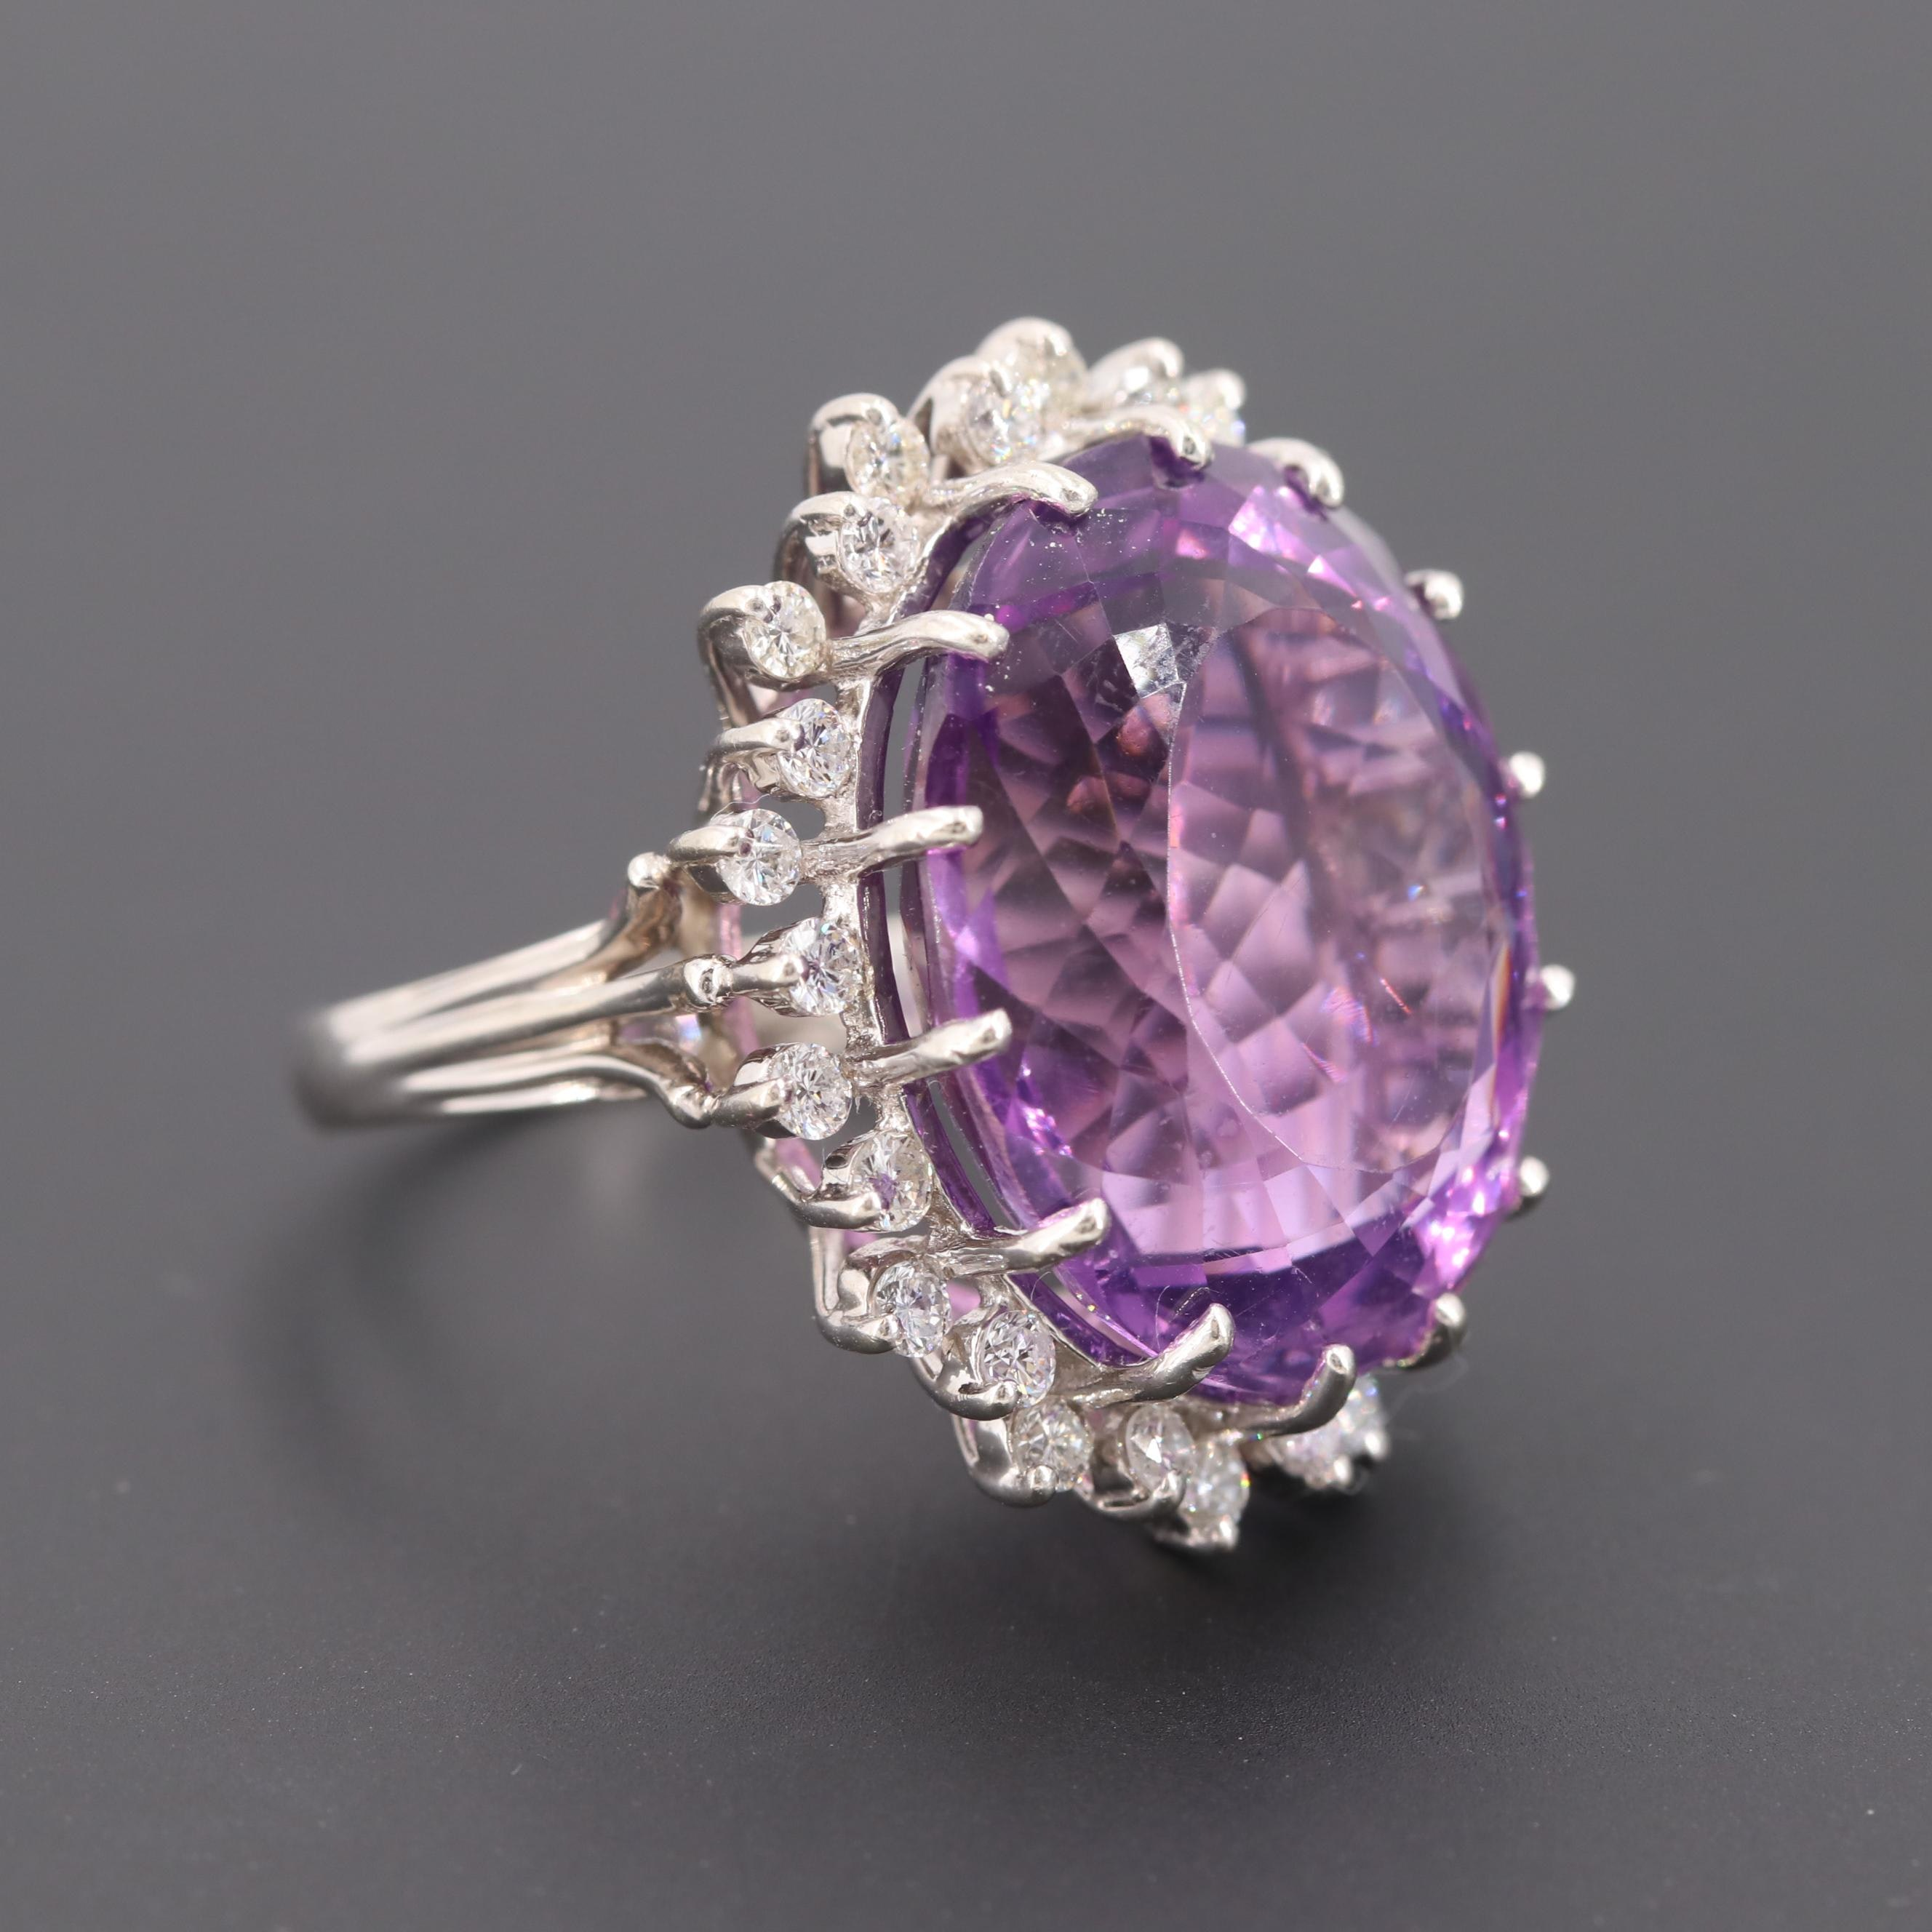 Vintage 14K White Gold 23.86 CT Amethyst Ring with Diamond Halo